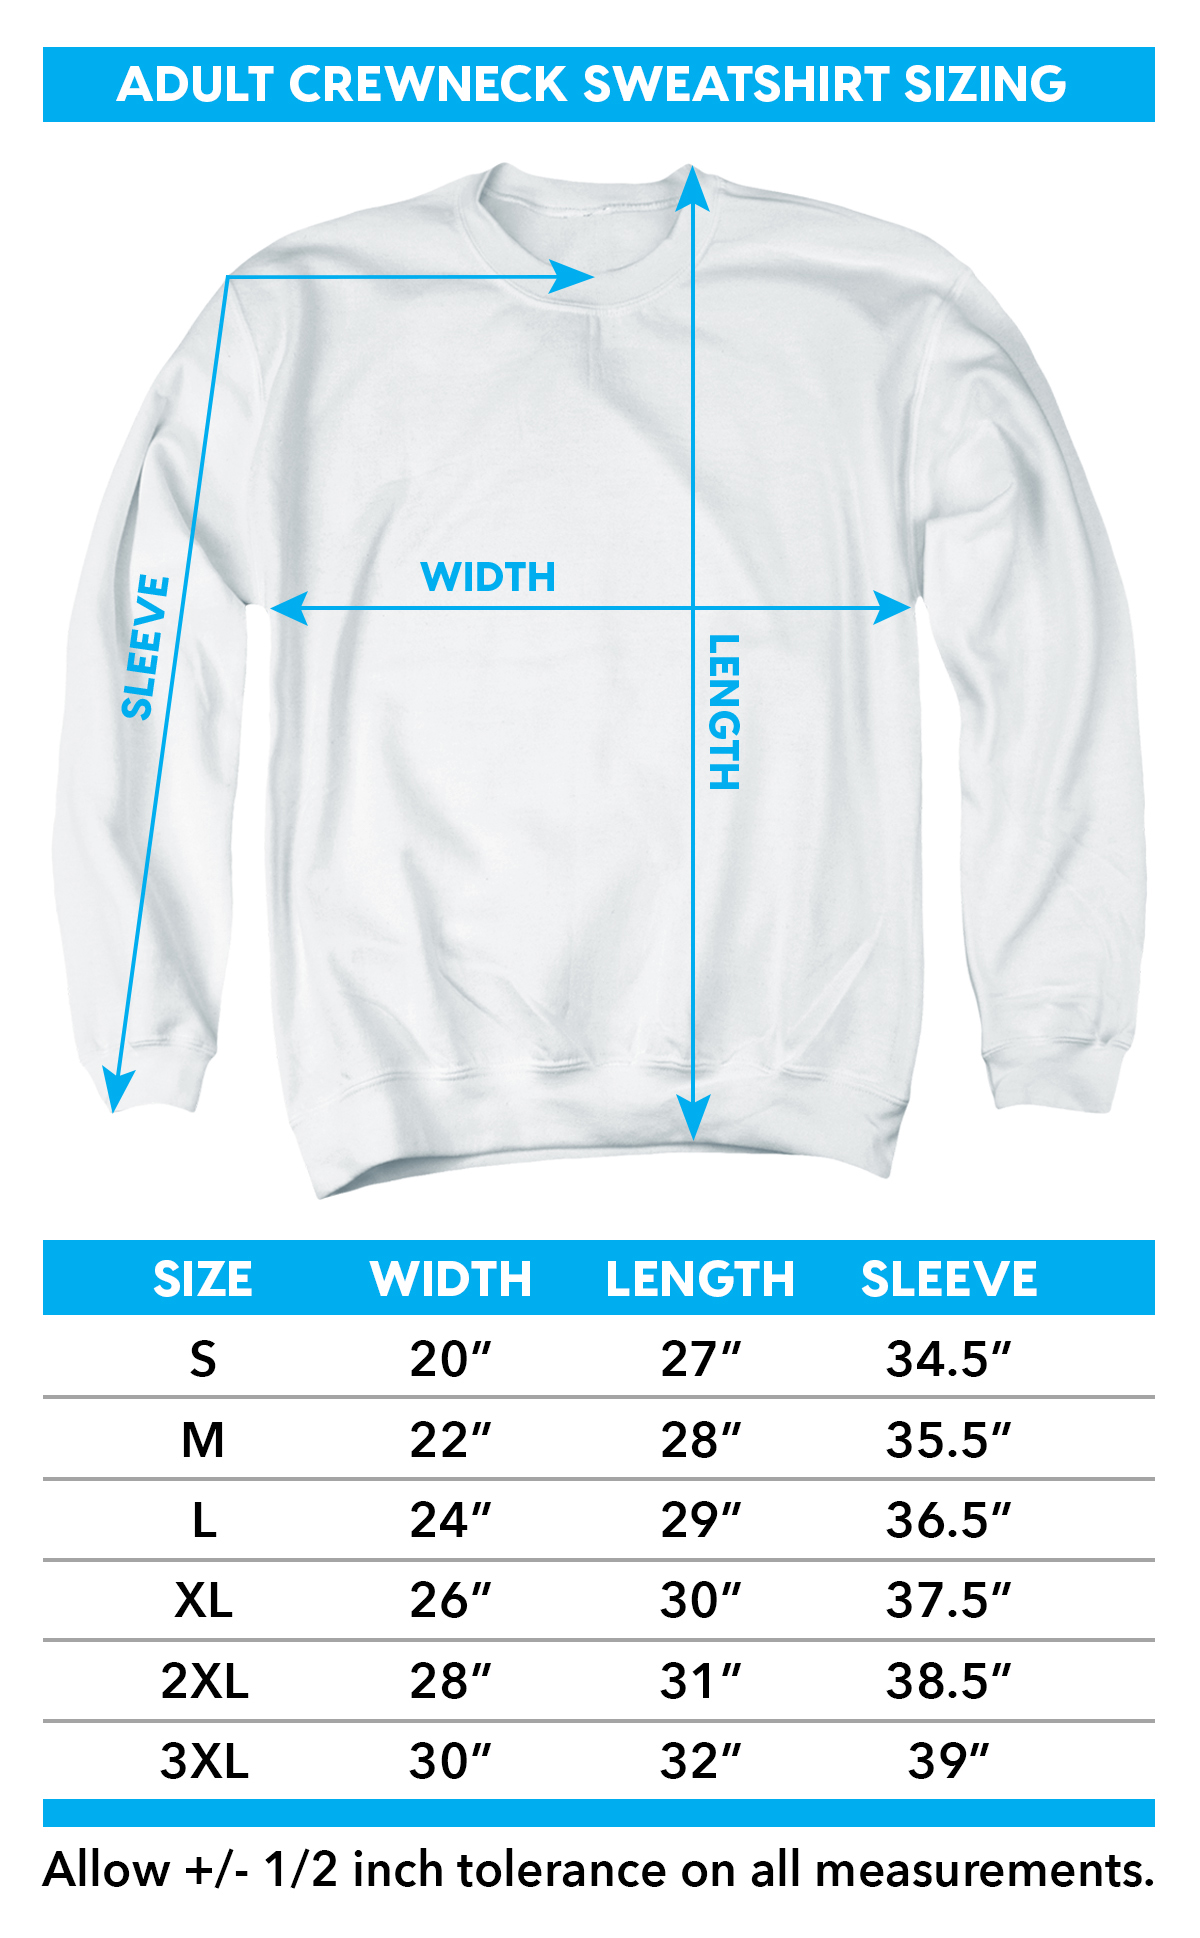 Sizing chart for the The Police '83 crewneck sweatshirt